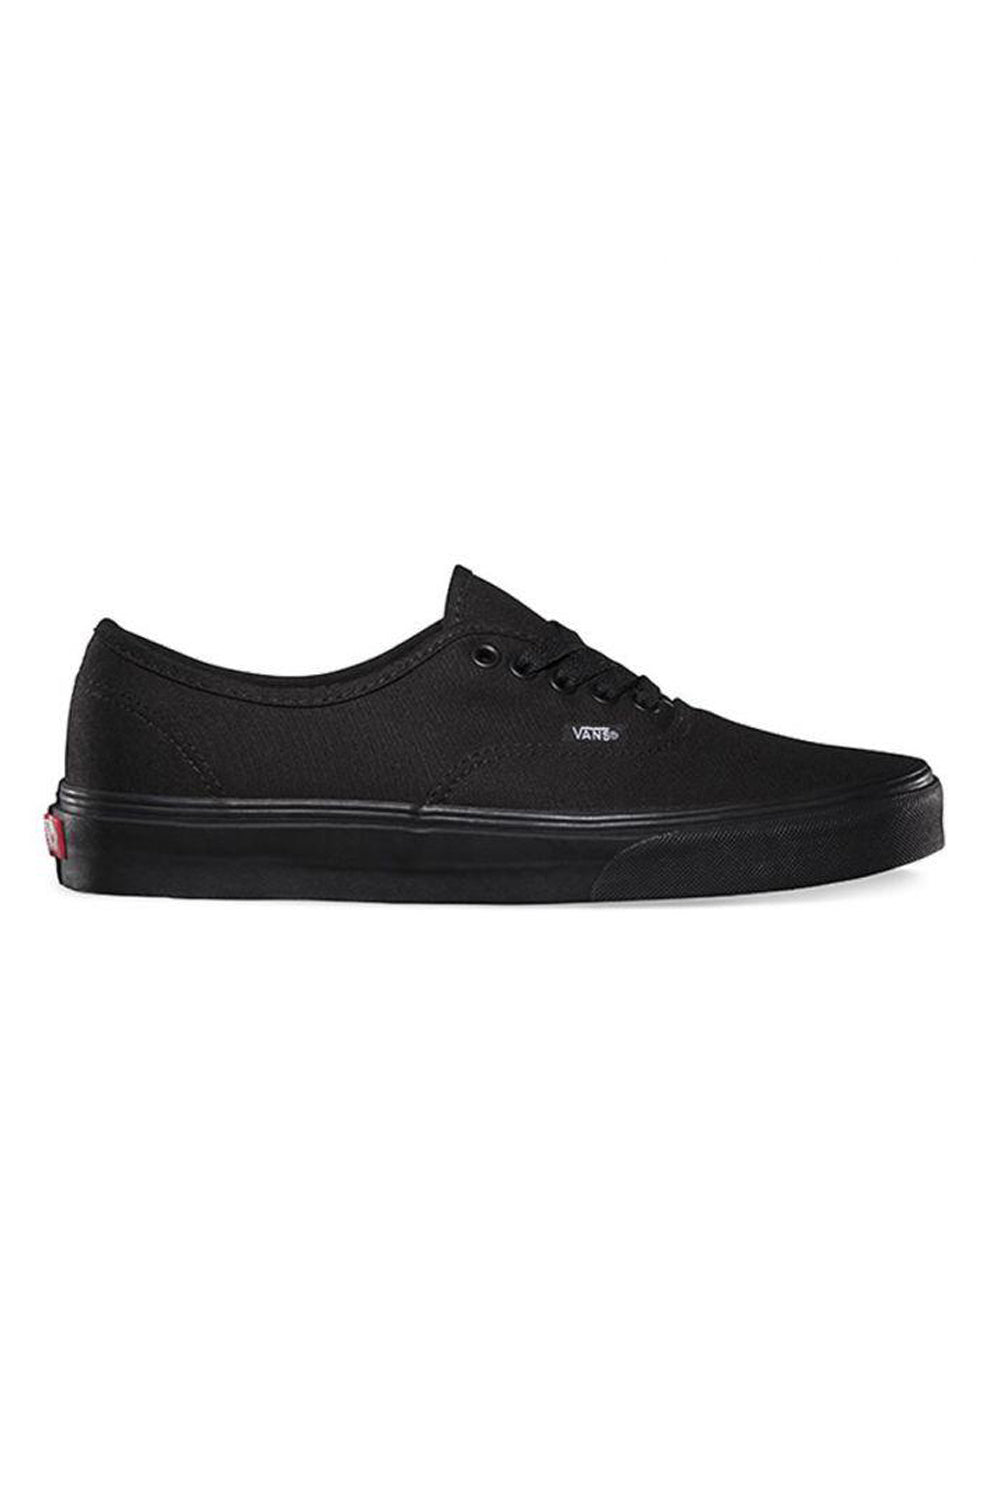 Vans Authentic Black / Black Shoe